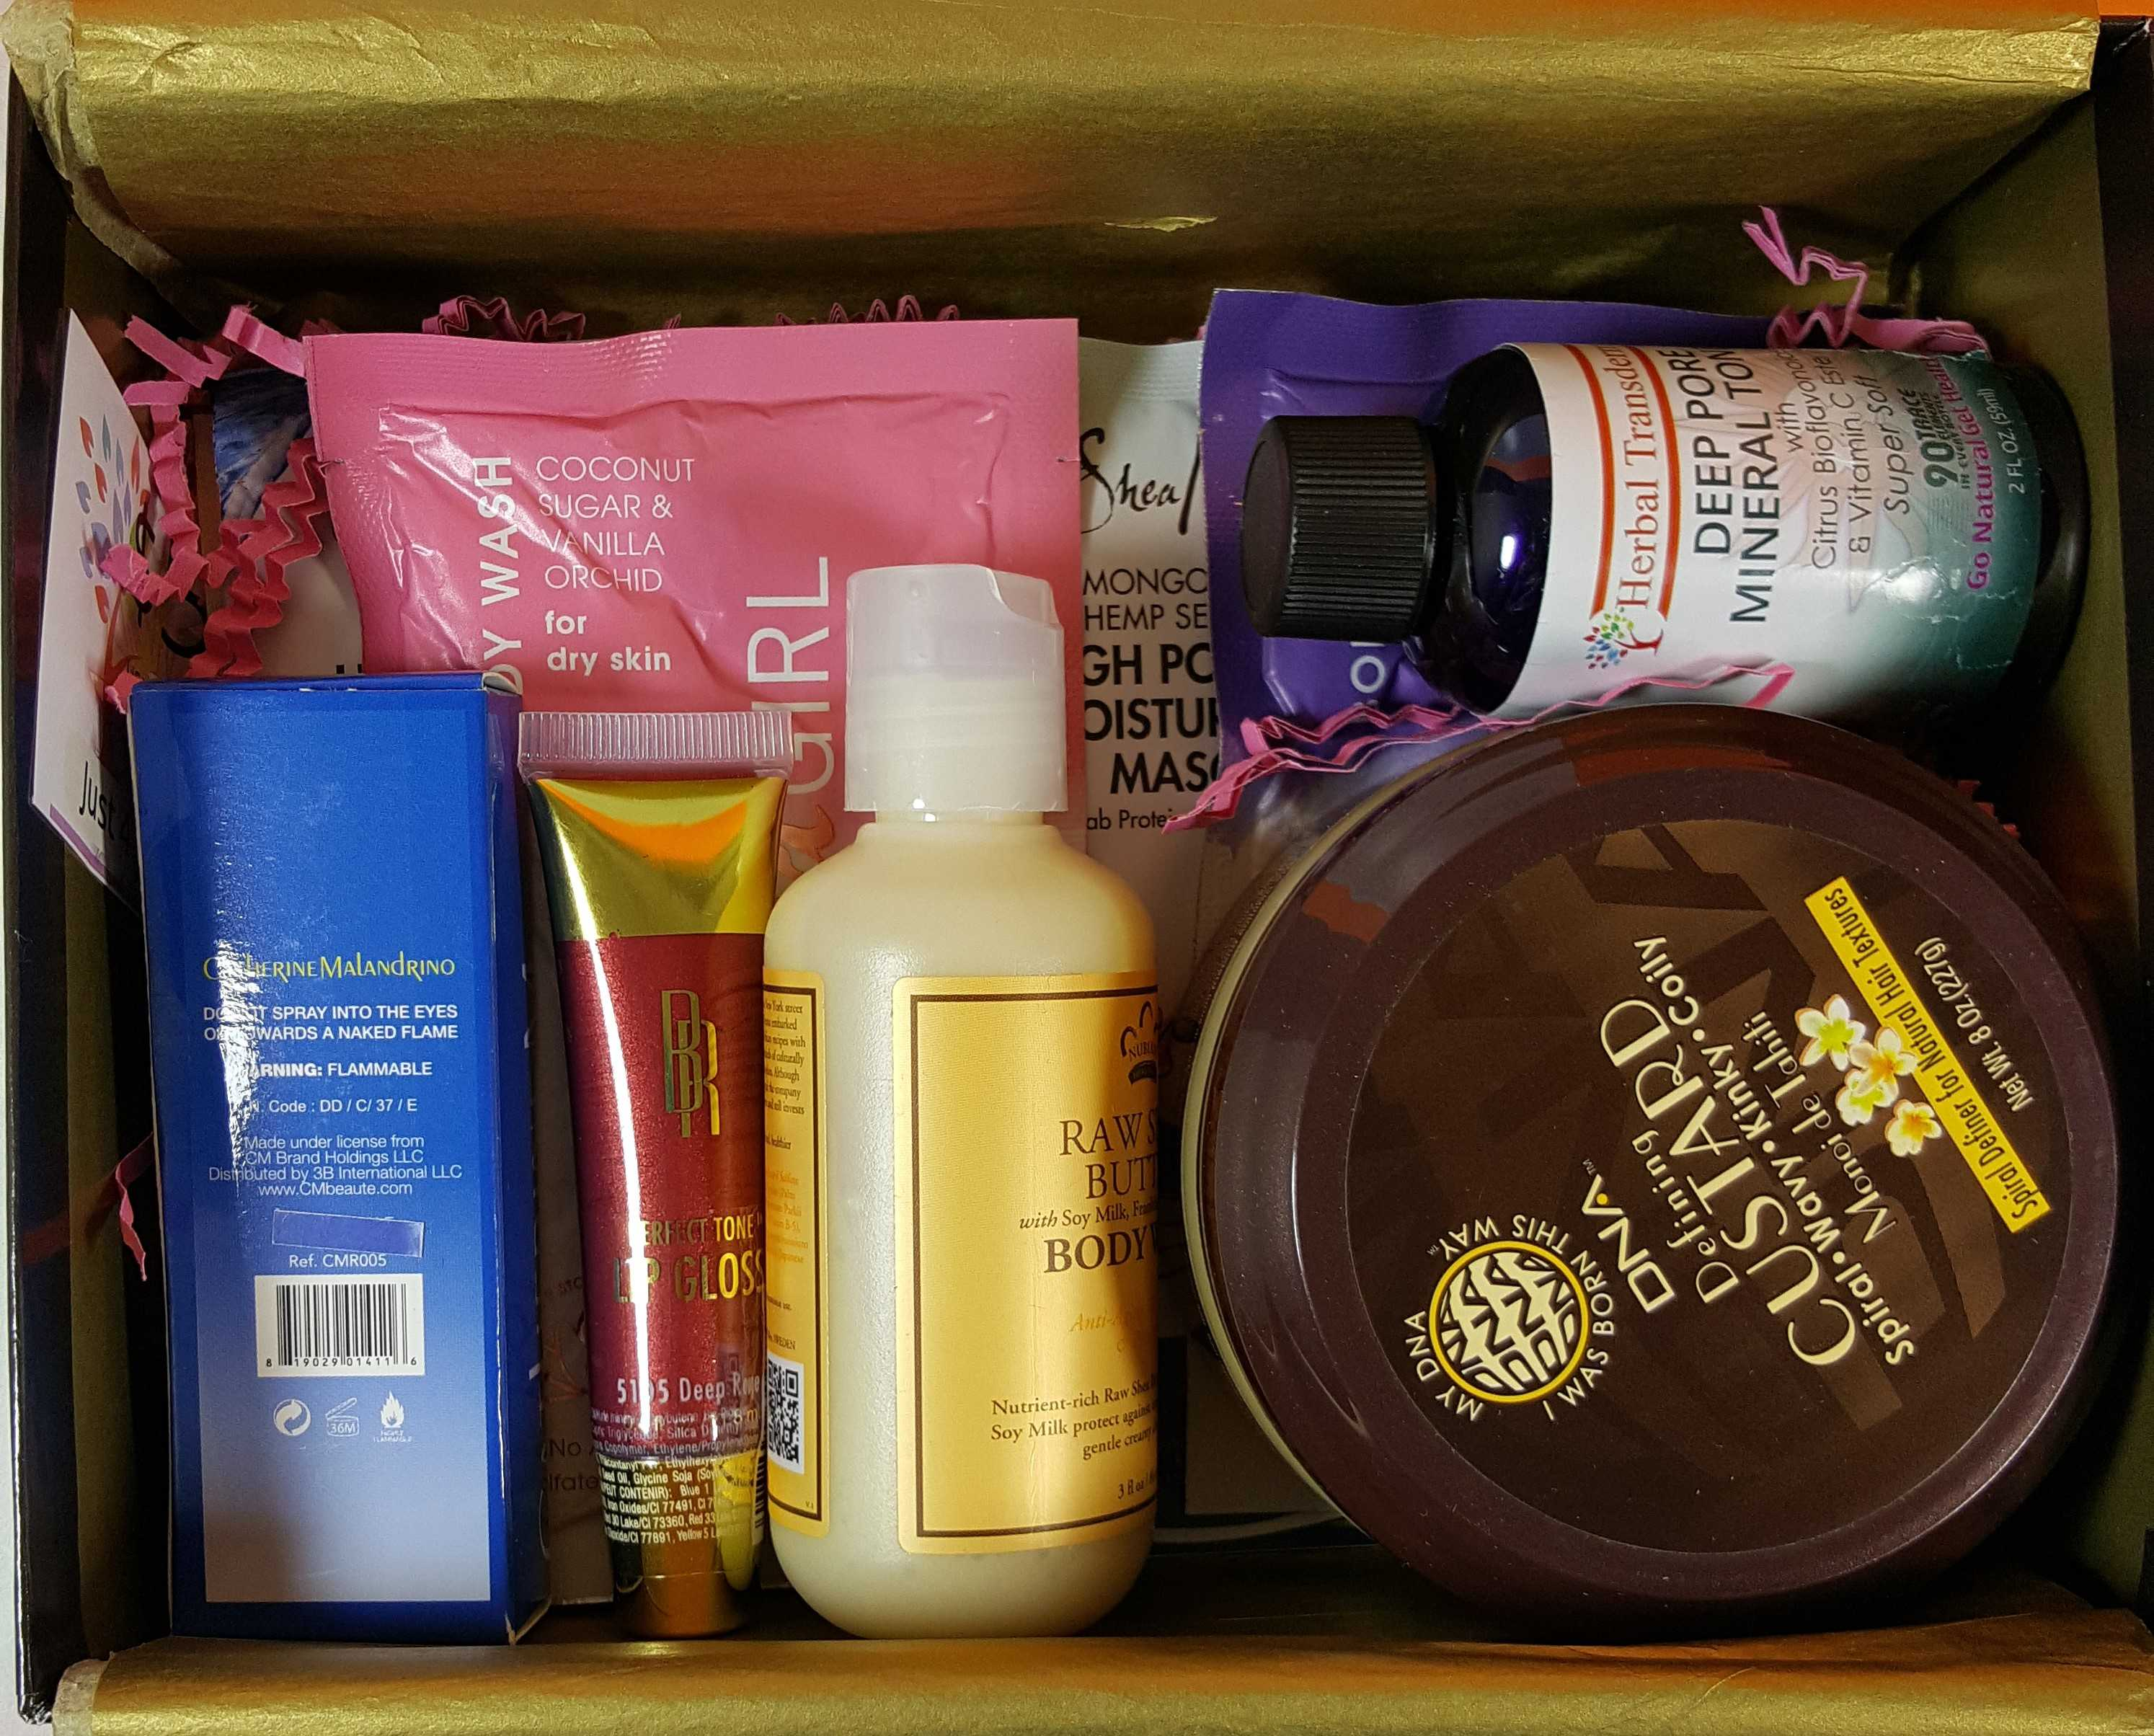 Cocotique October 2016 Subscription Box Review + Coupon